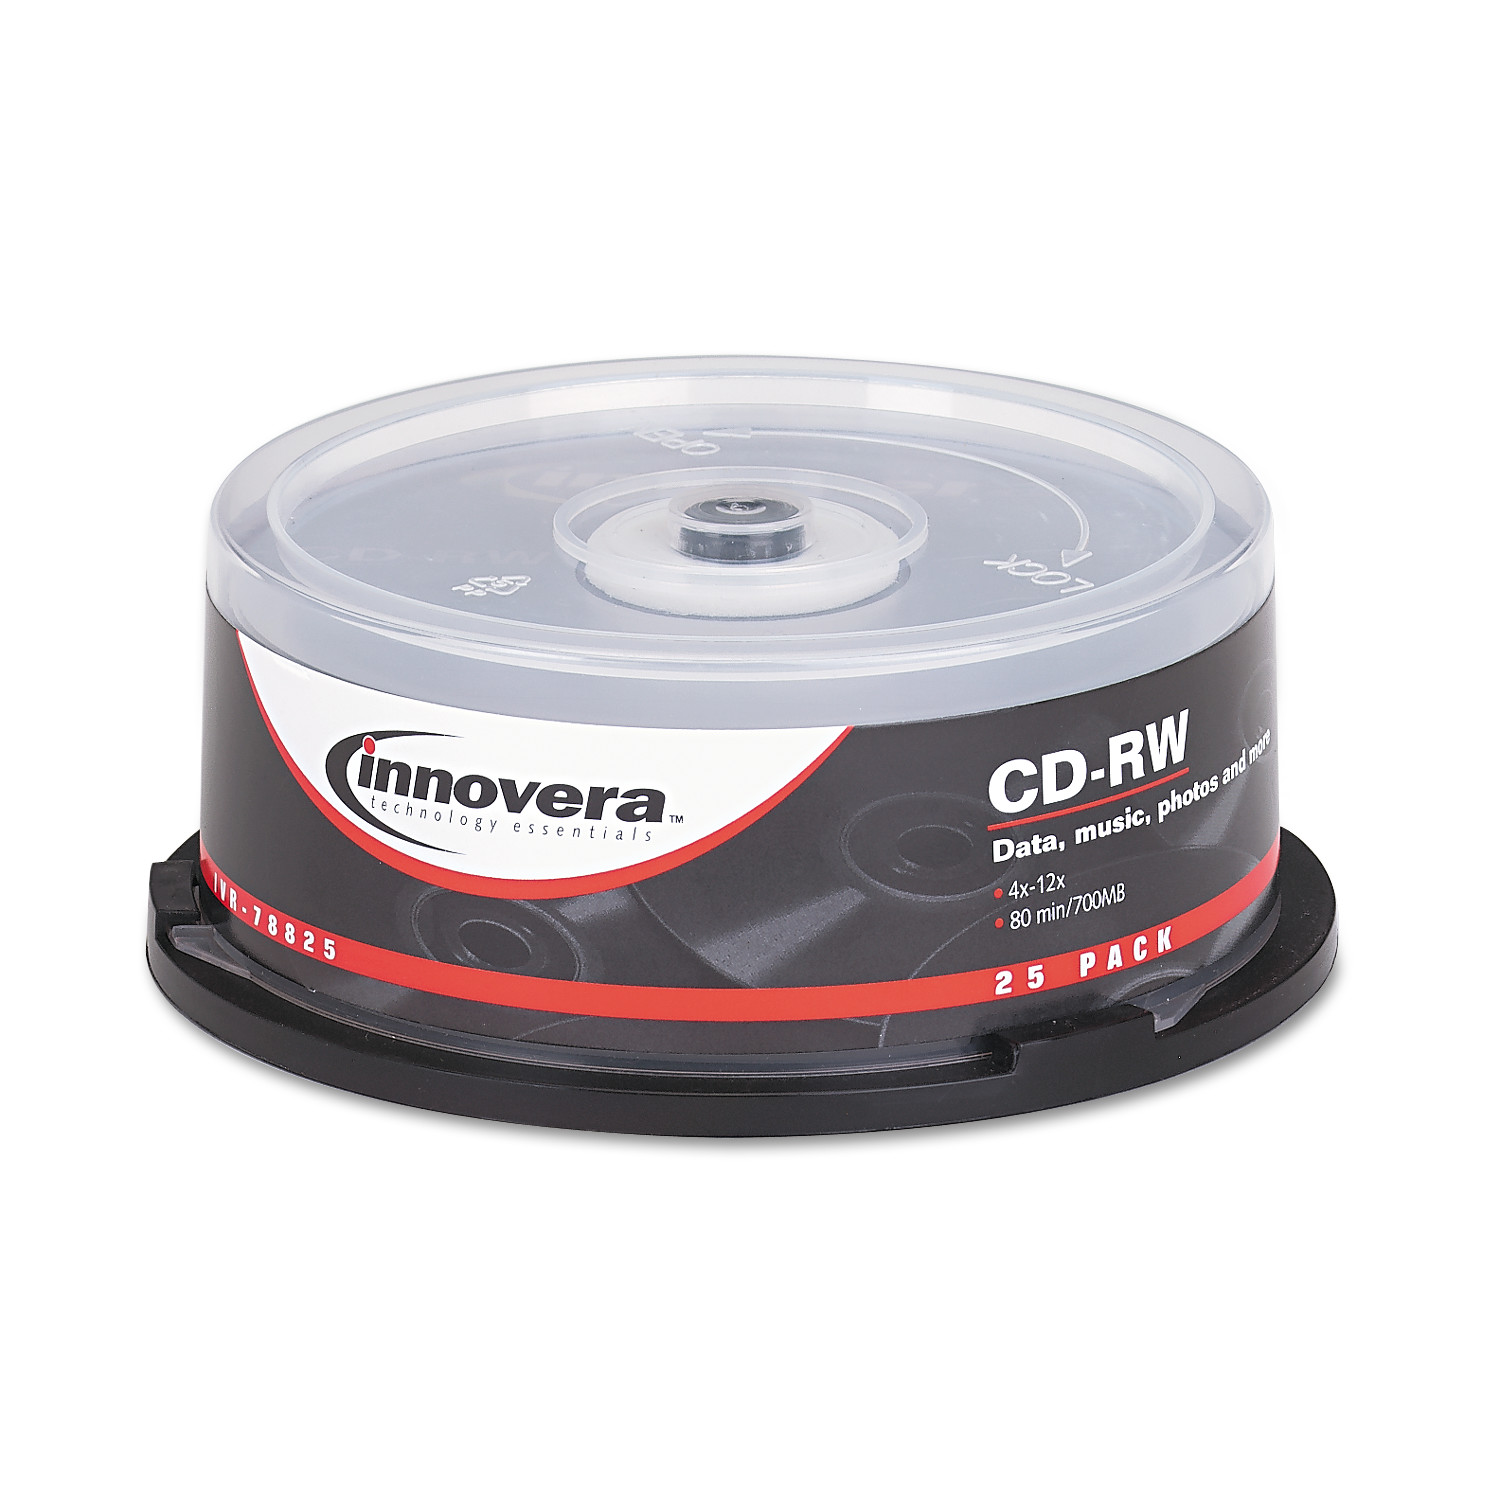 Innovera CD-RW Discs, 700MB/80min, 12x, Spindle, Silver, 25/Pack -IVR78825